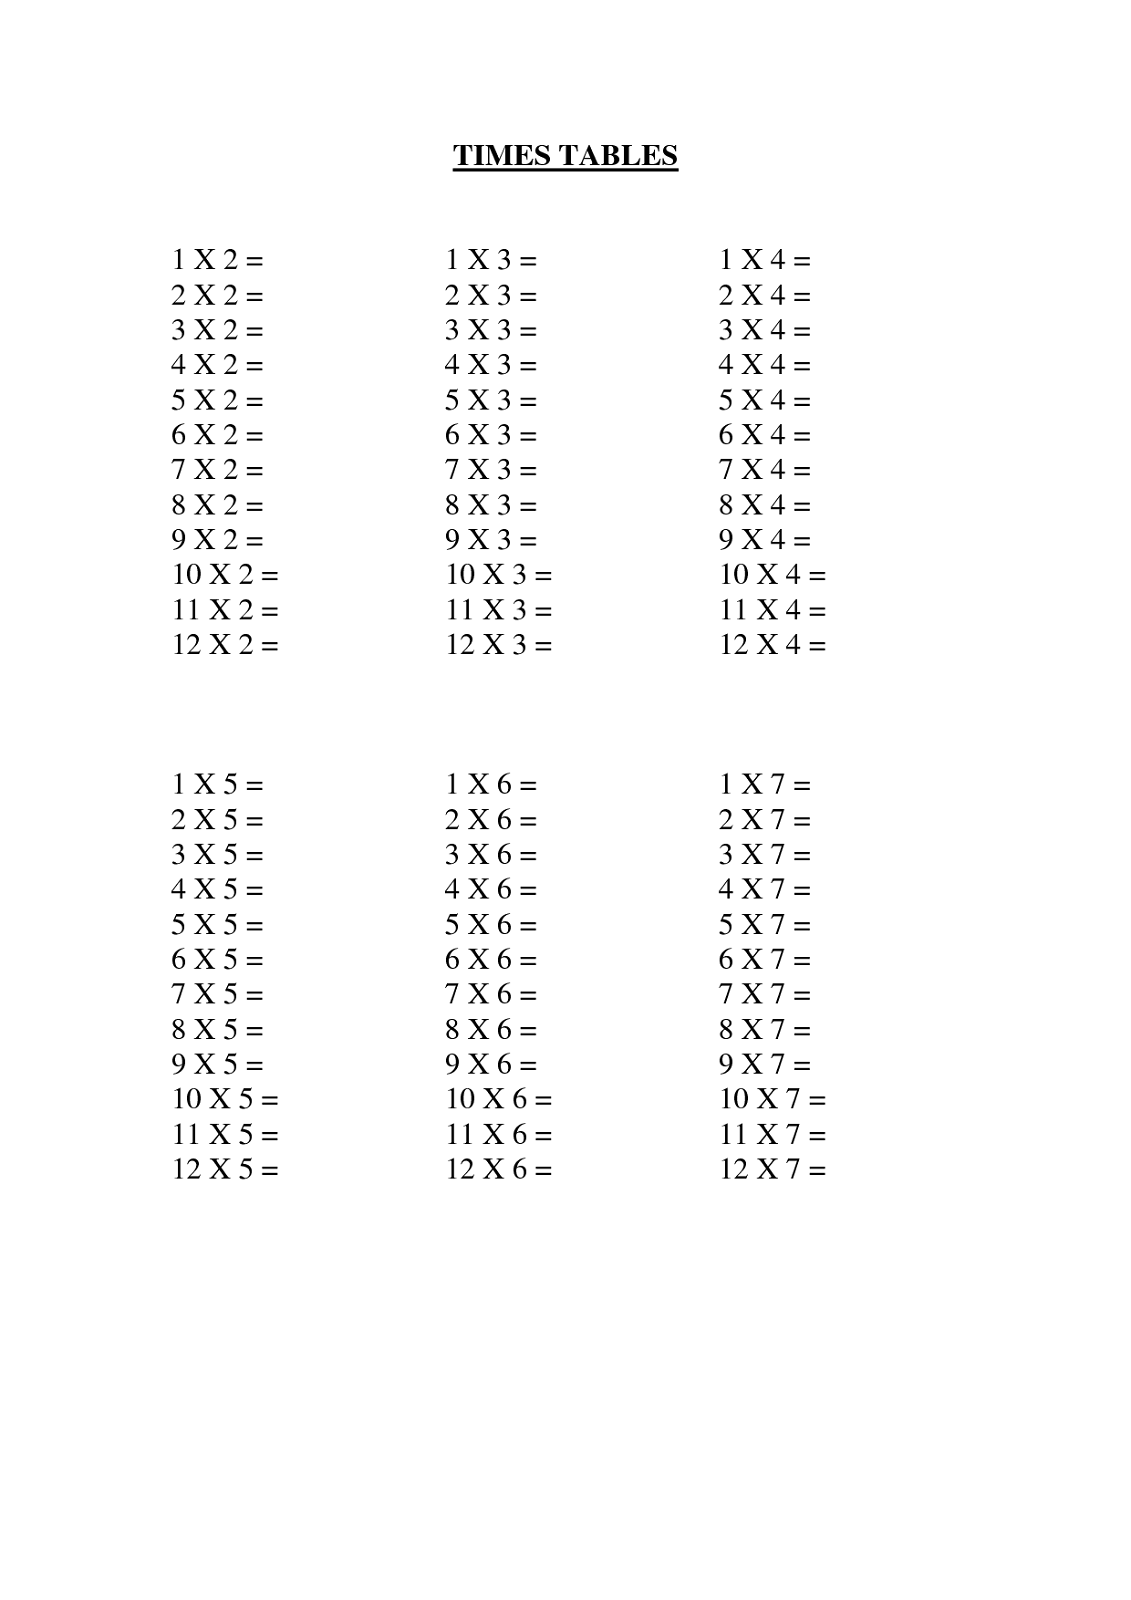 Times Table Practice Sheets